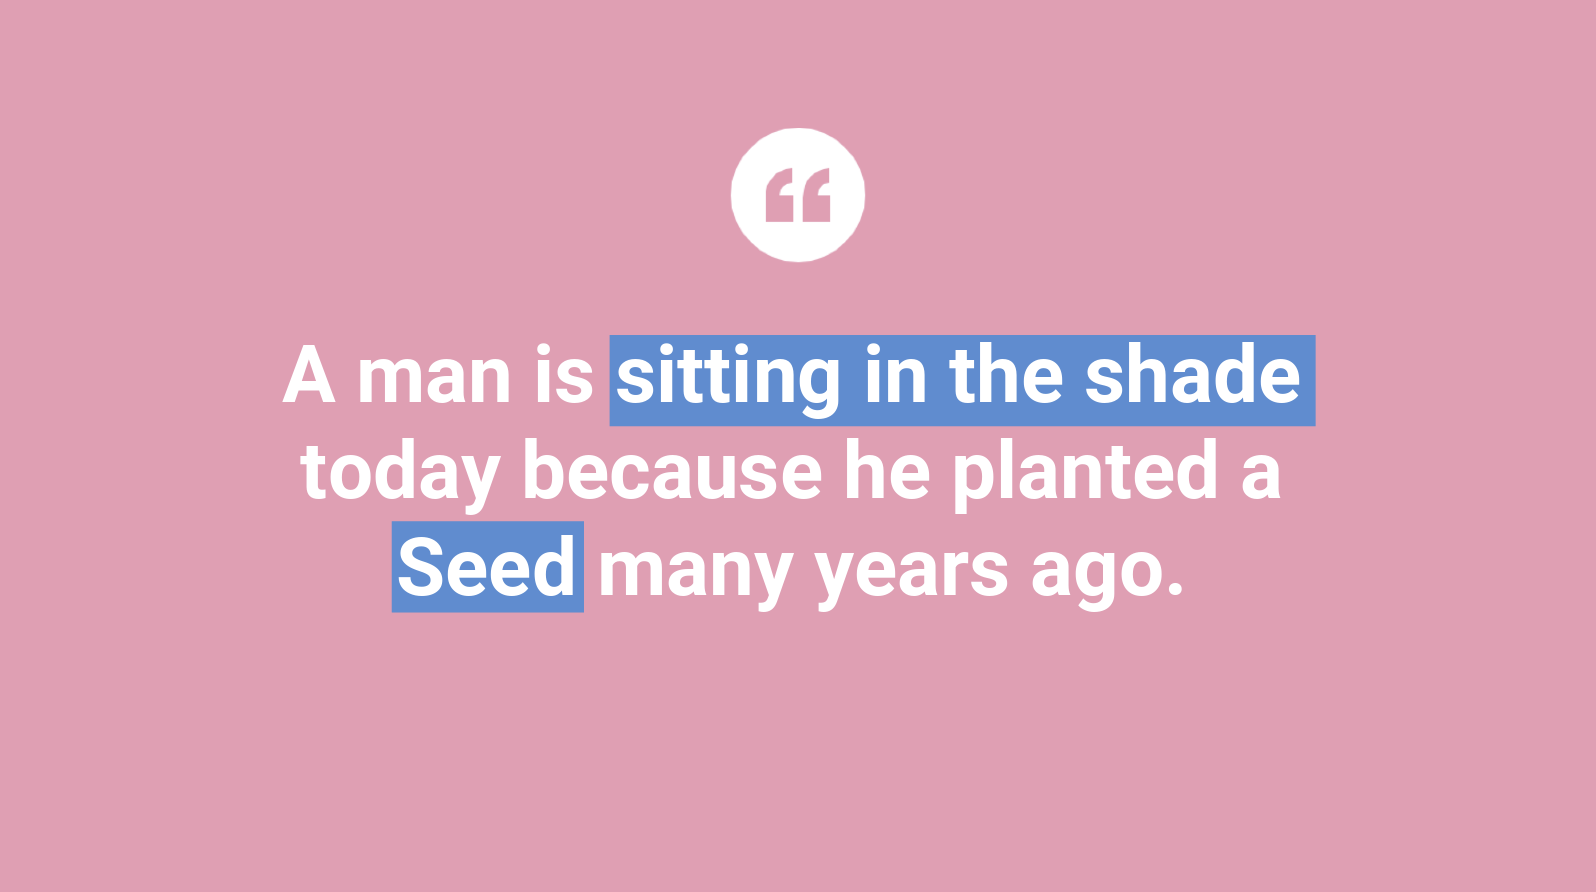 A man is sitting in the shade today because he planted a Seed many years ago.